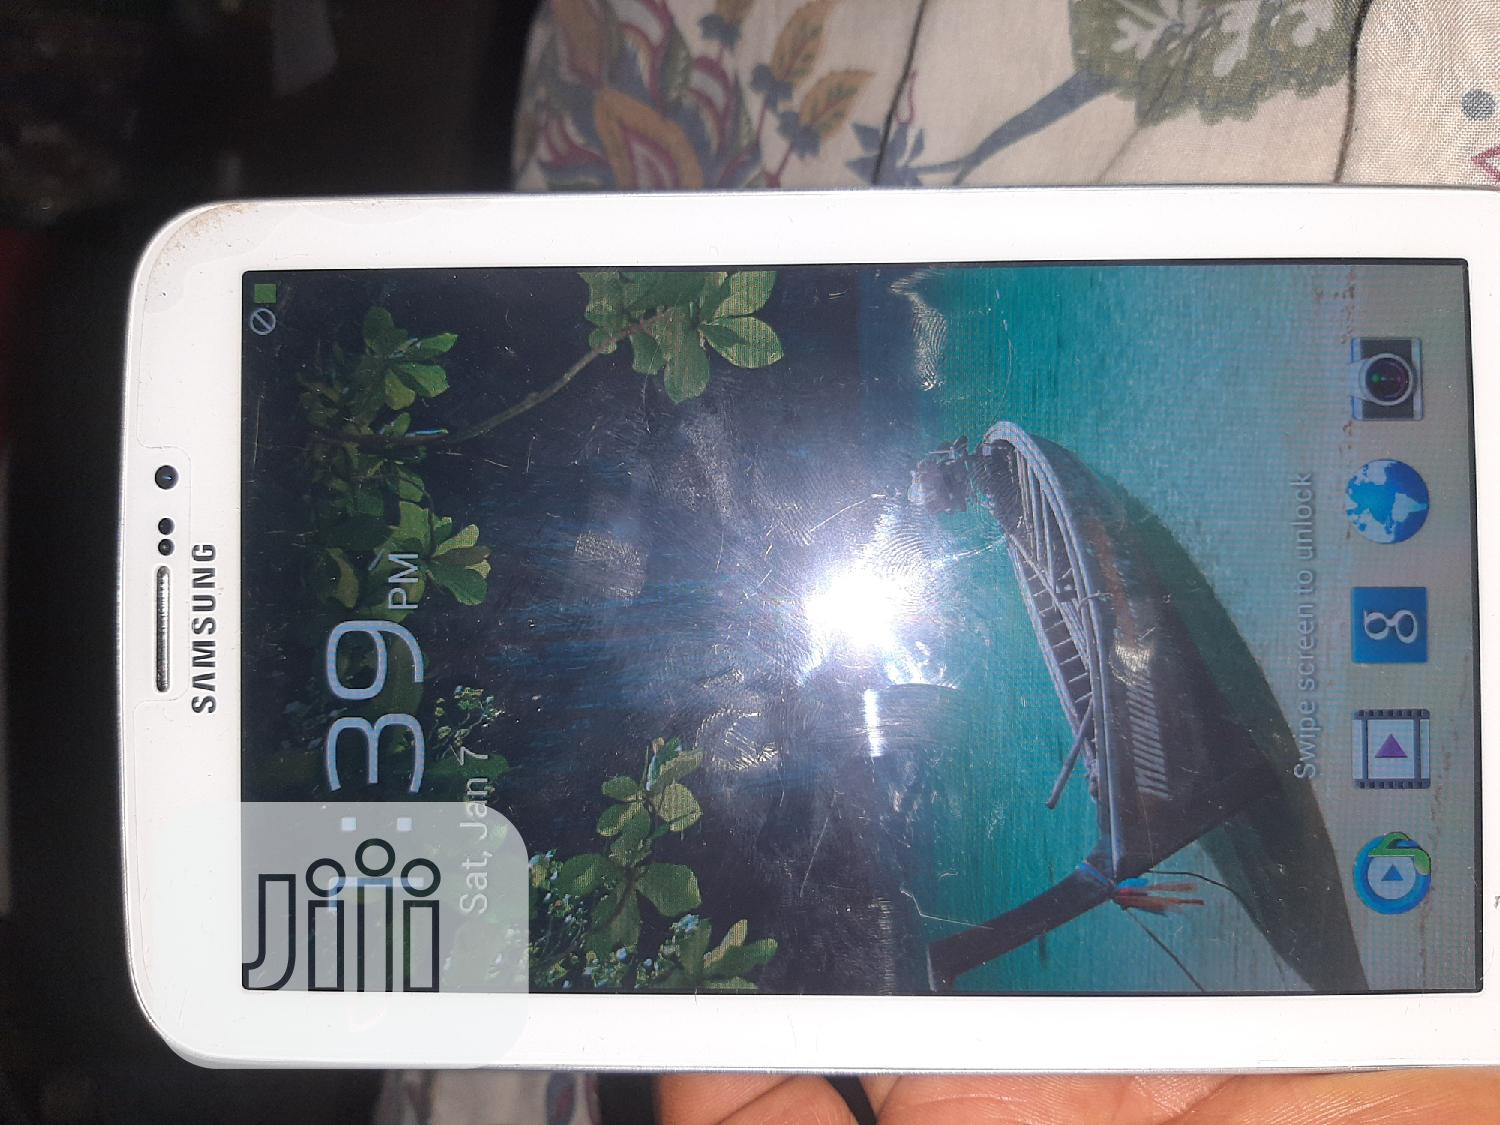 Samsung Galaxy Tab 3 7.0 8 GB White | Tablets for sale in Wuse, Abuja (FCT) State, Nigeria